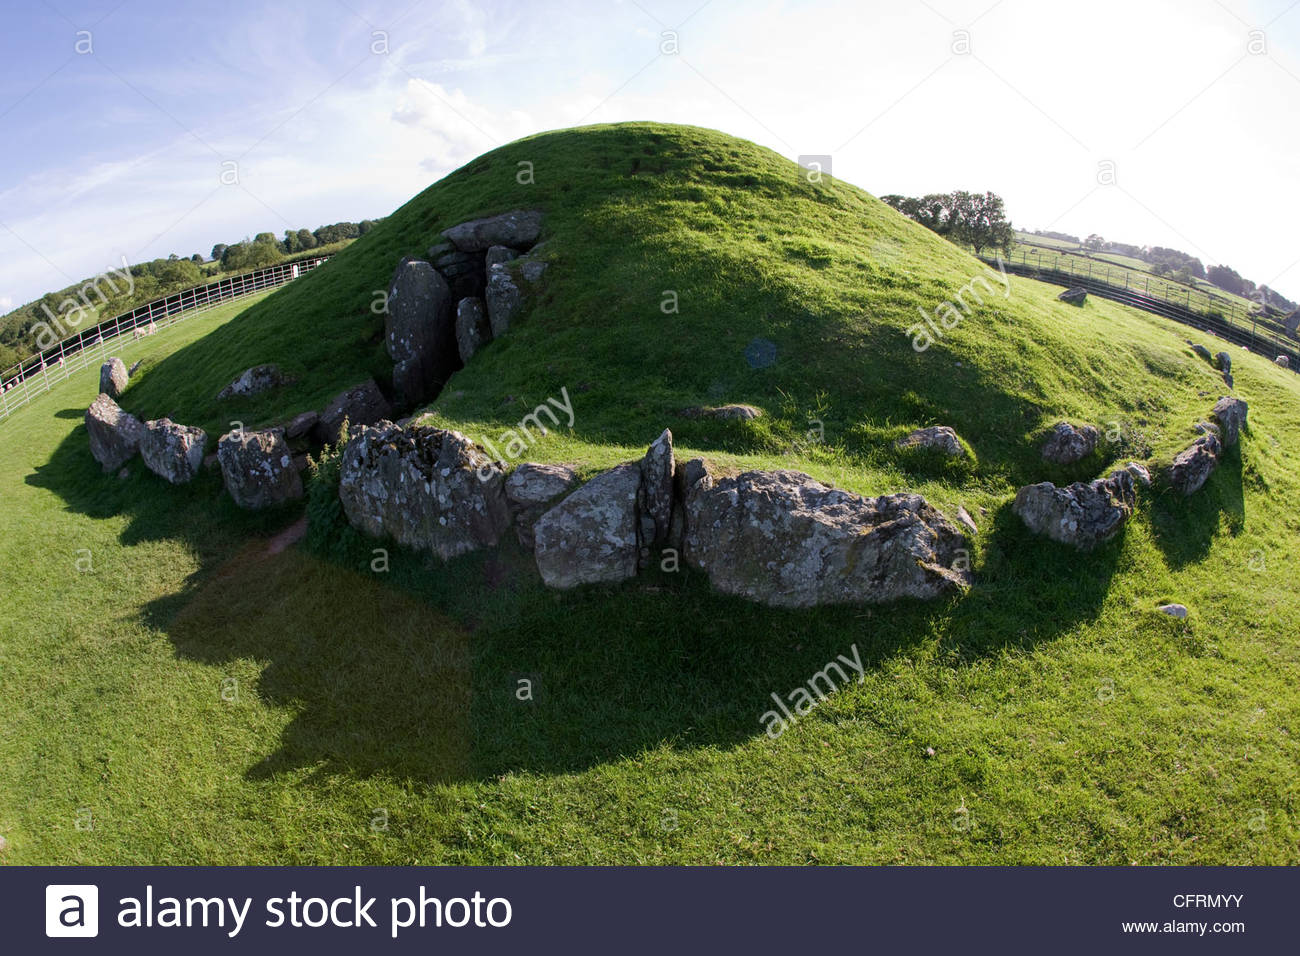 Bryn Celli Ddu North Wales, Bryn Celli Ddu a chambered neolithic burial mound and standing ...